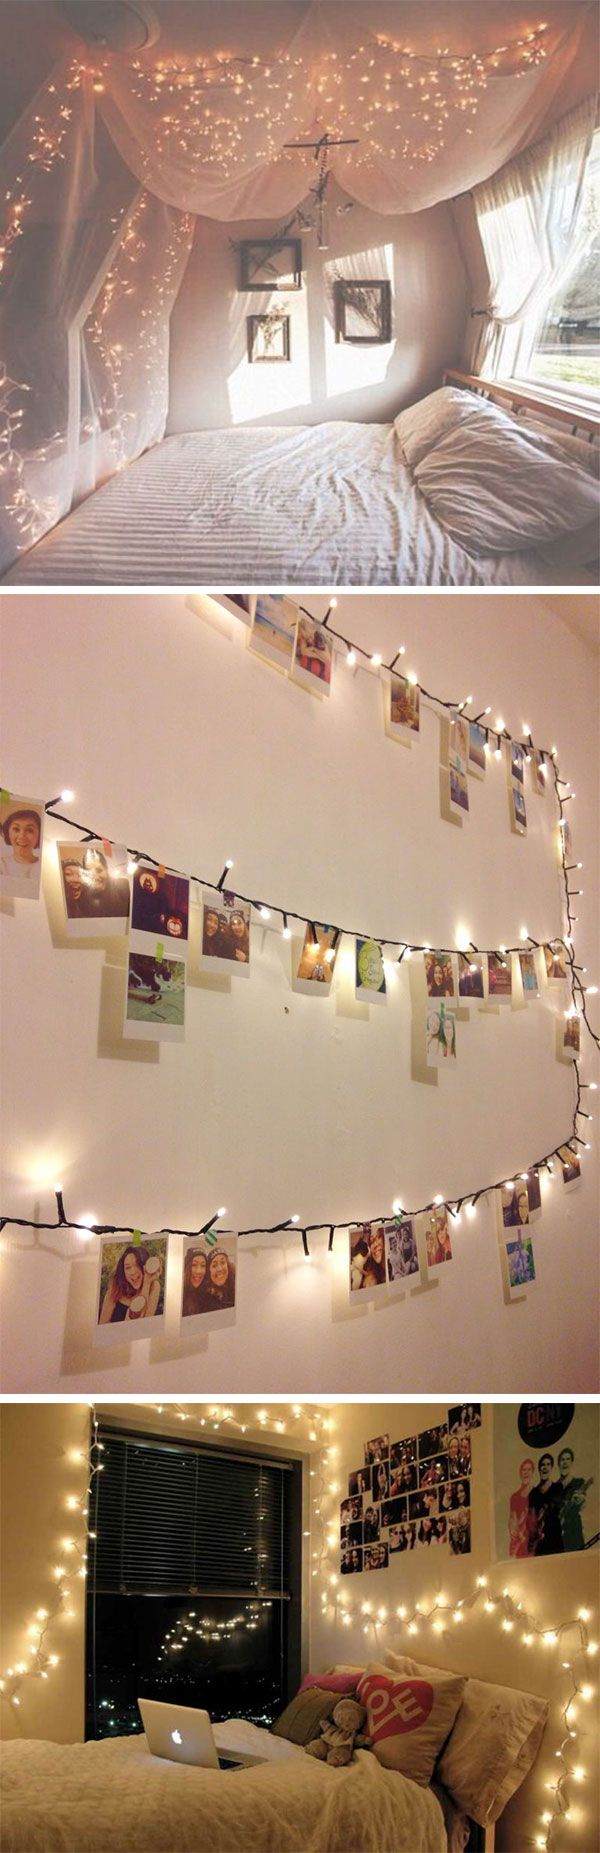 25+ great ideas about diy bedroom decor on pinterest